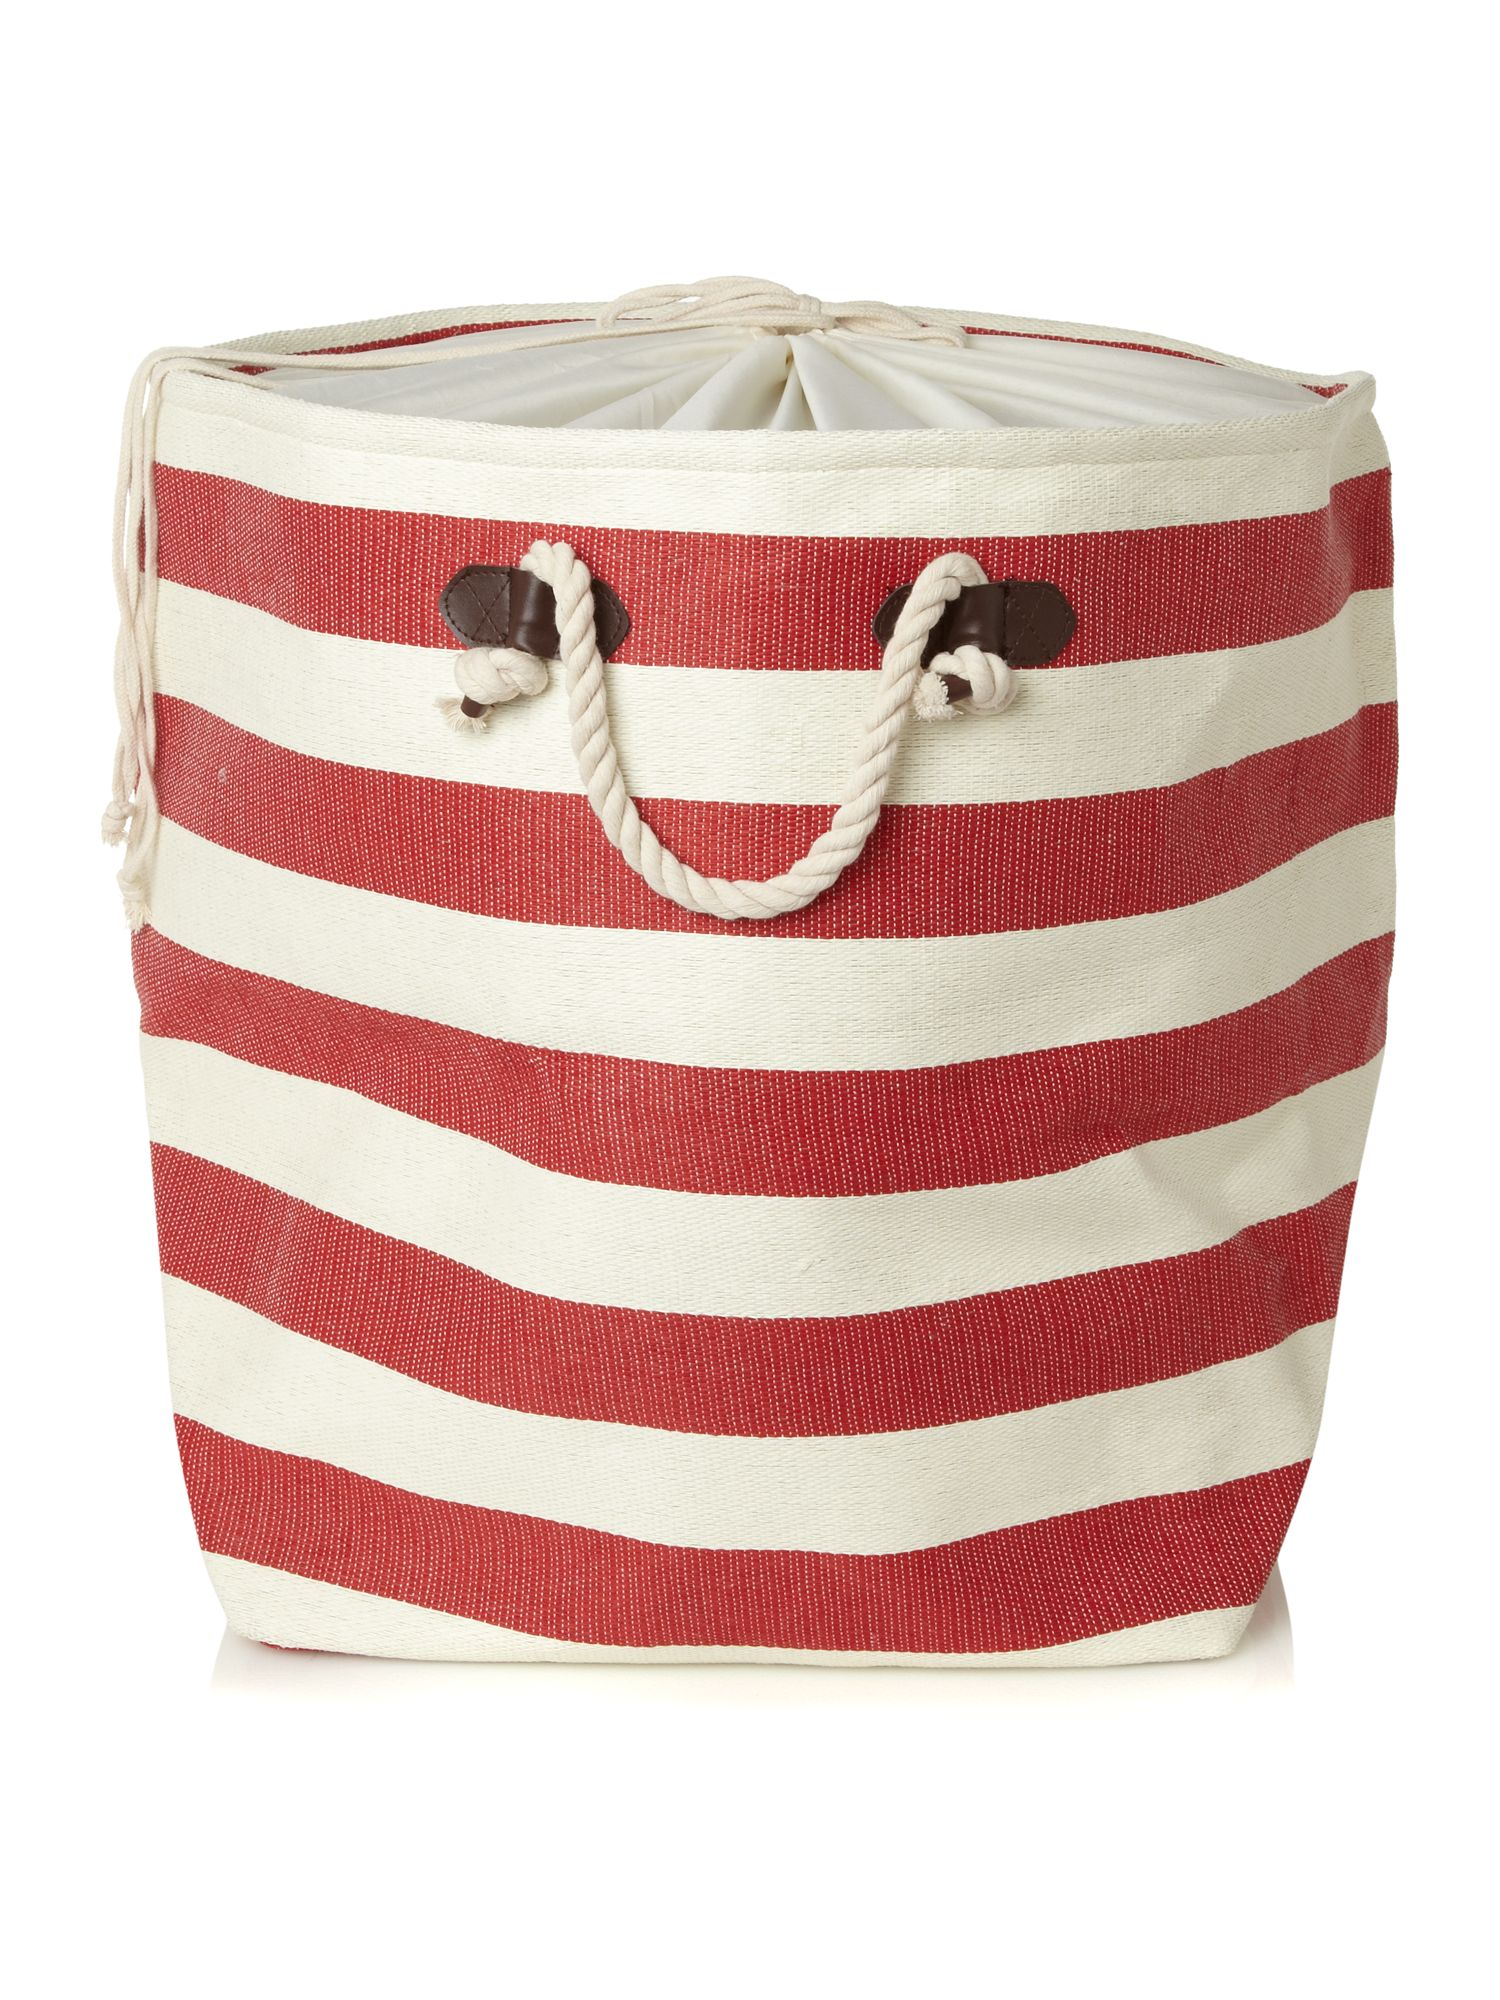 Nautical striped laundry bag in red